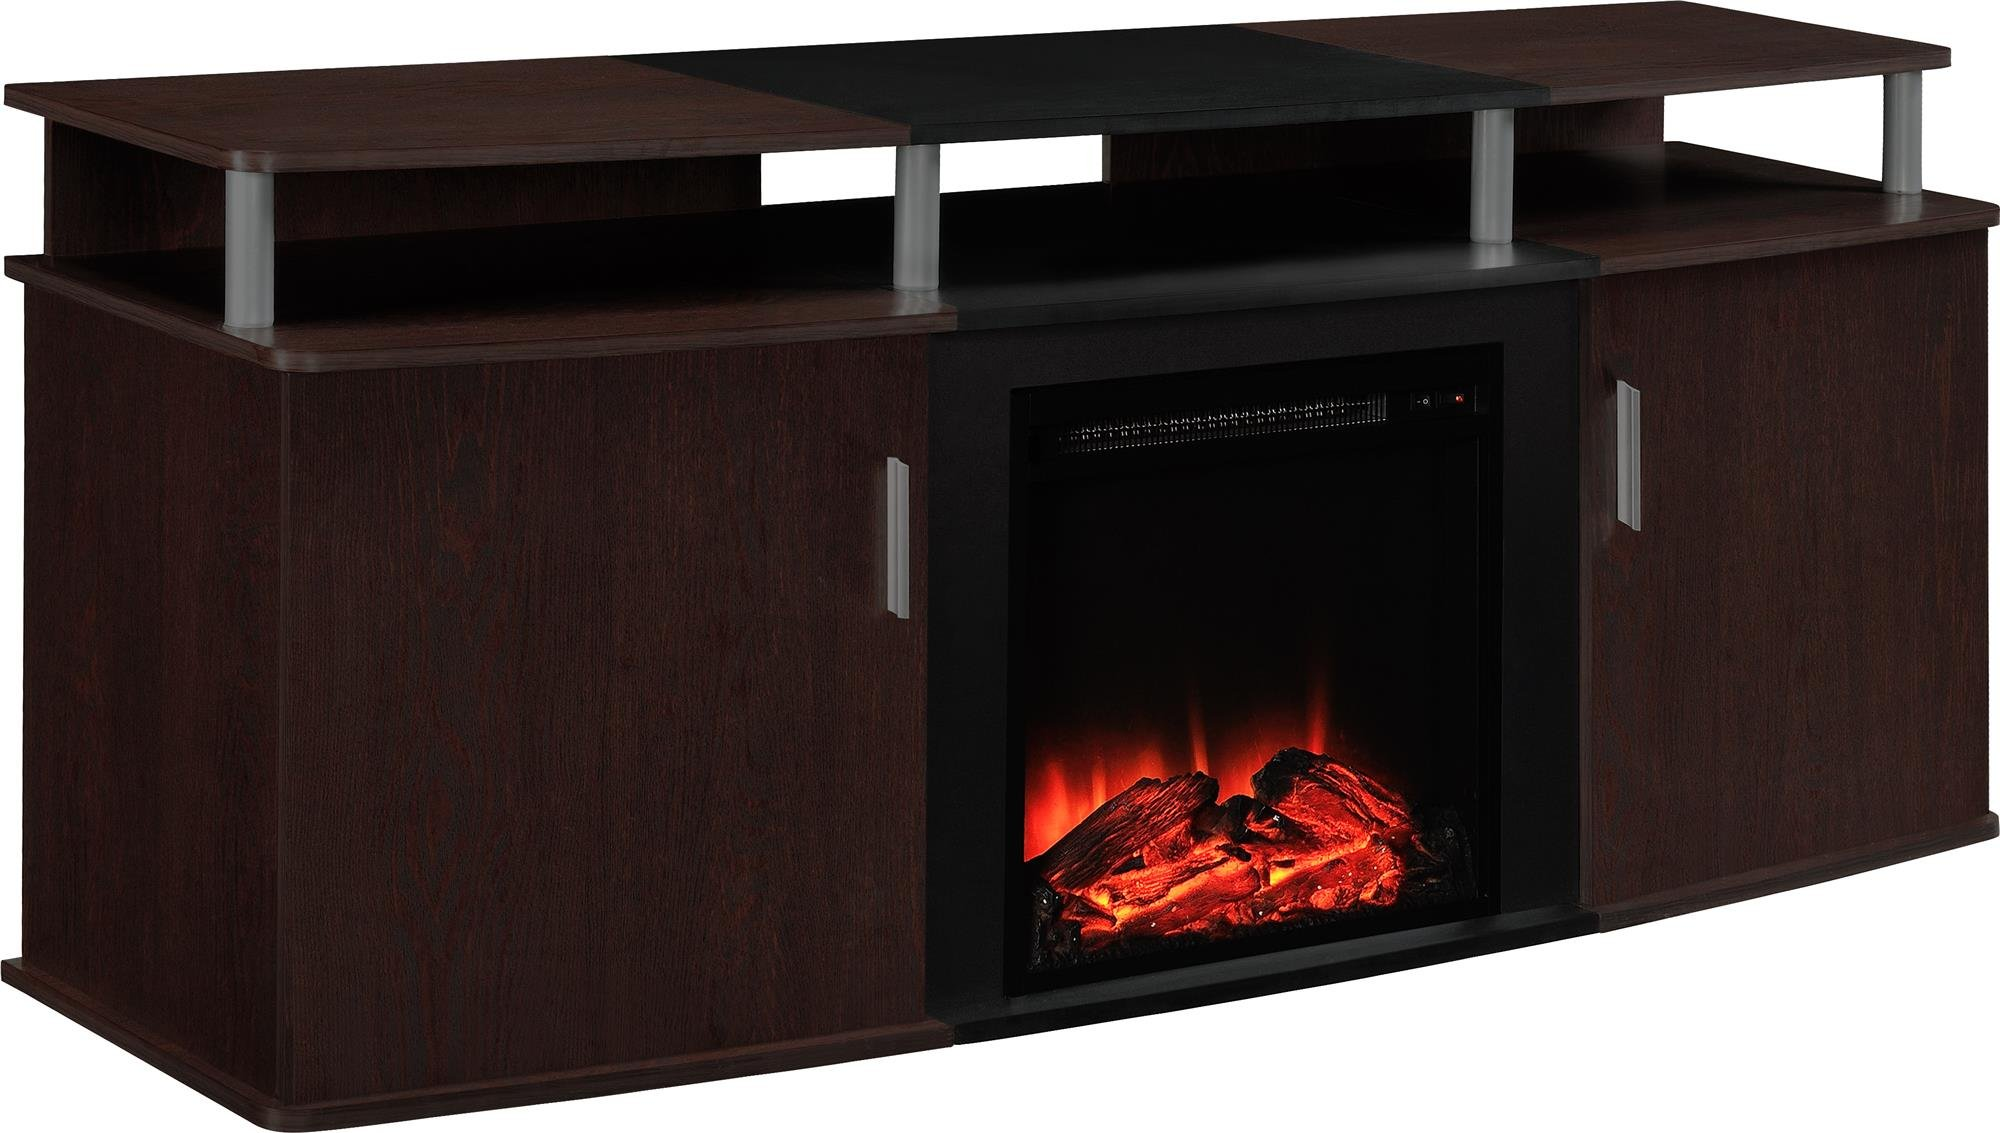 altra furniture carson fireplace tv console 70 cherry black fireplace tv new. Black Bedroom Furniture Sets. Home Design Ideas